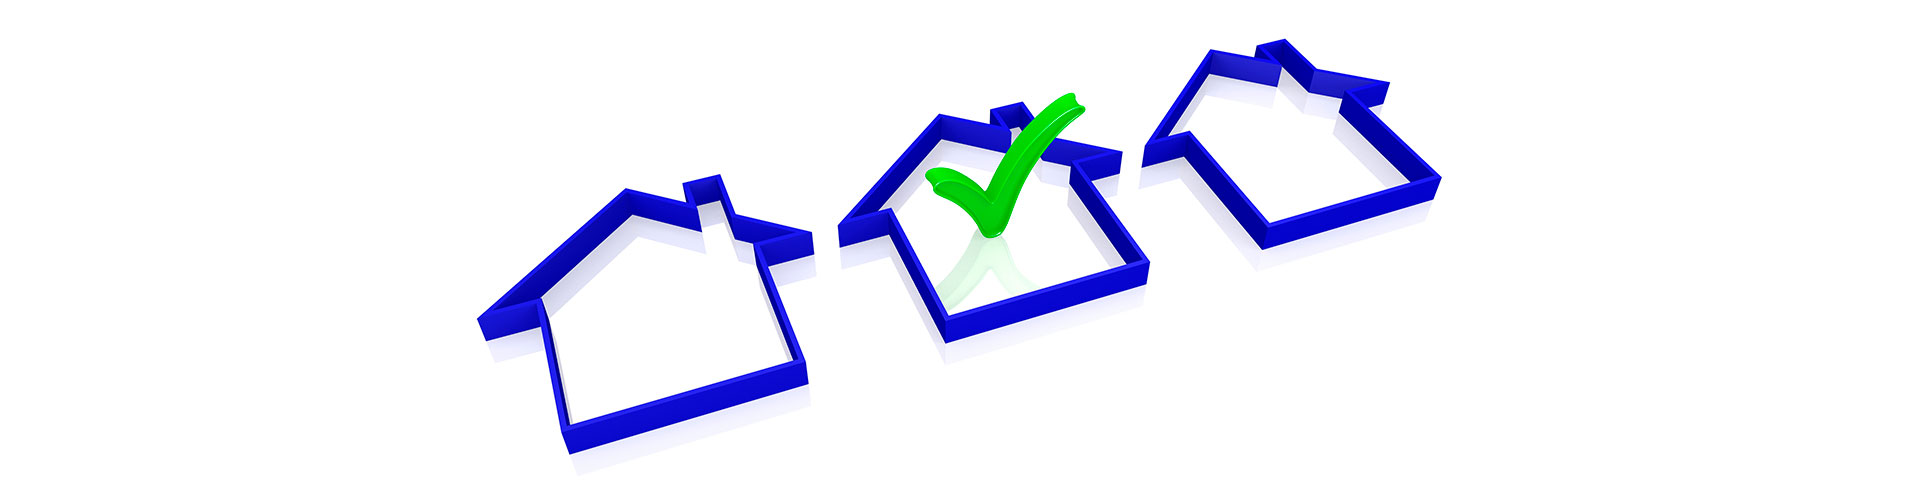 US Housing Market Swings in Favor of Homeownership | Simplifying The Market